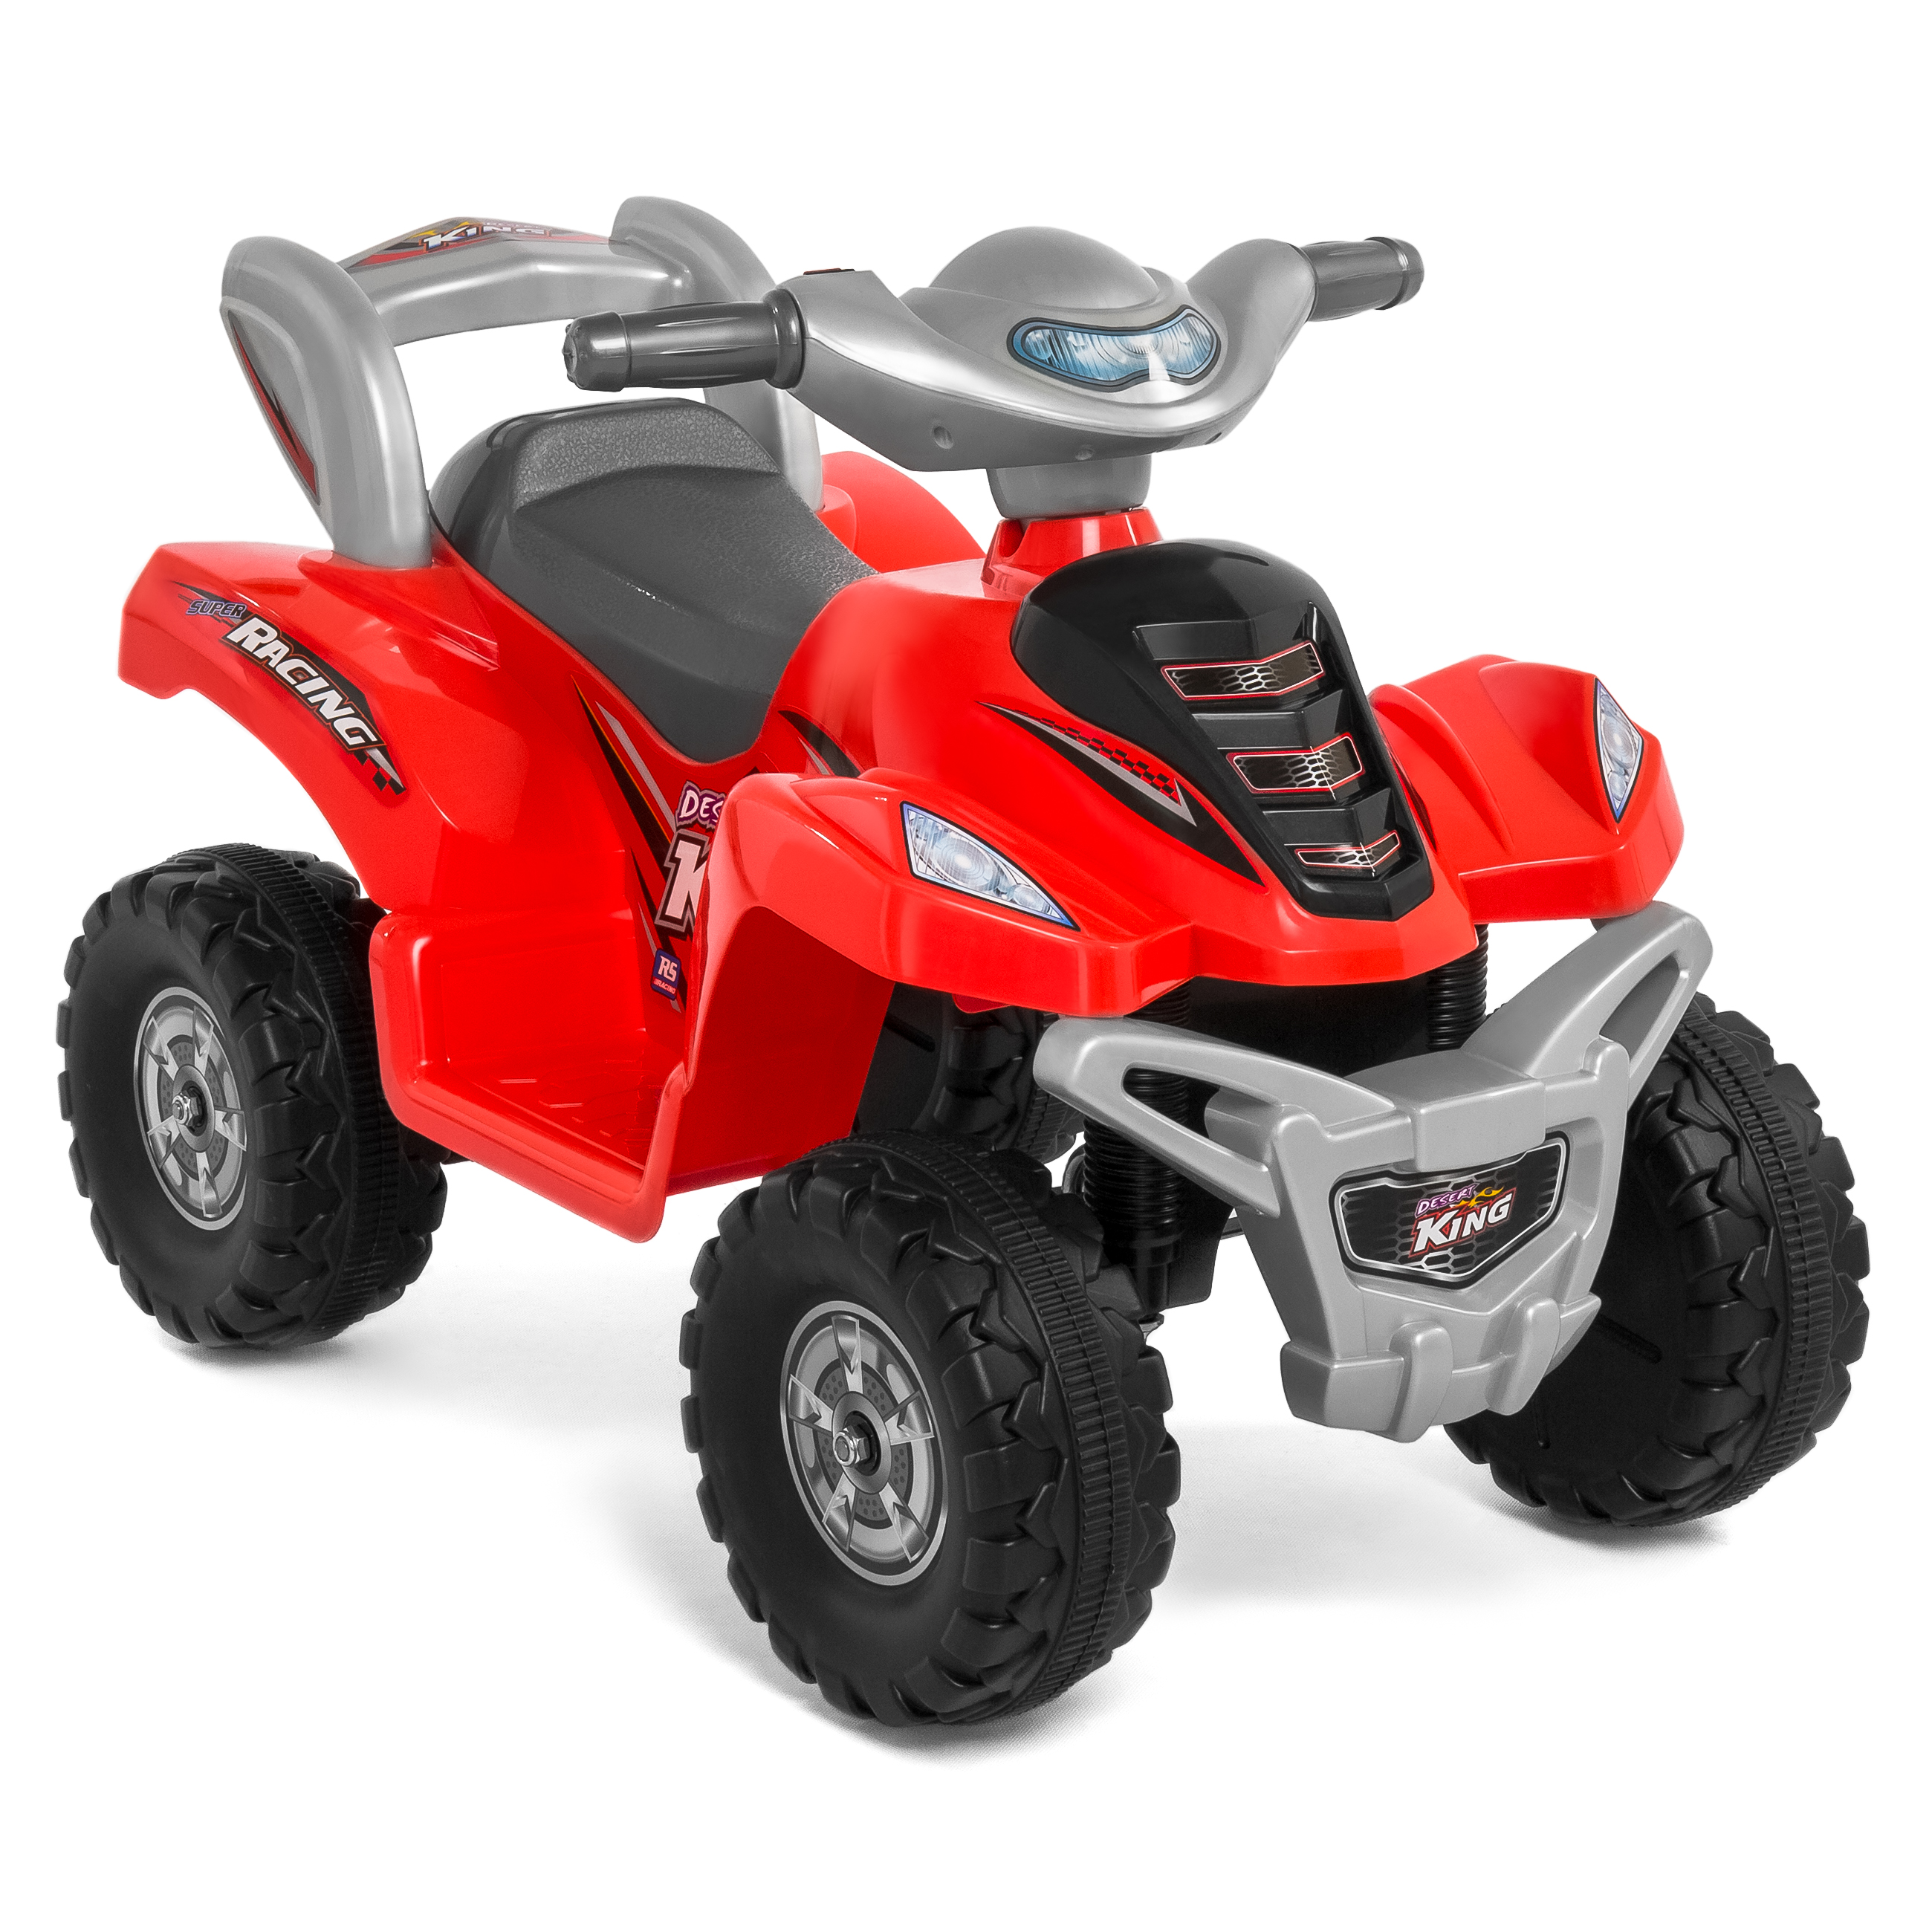 Kids Ride On ATV 6V Toy Quad Battery Power Electric 4 Wheel Power Bicycle